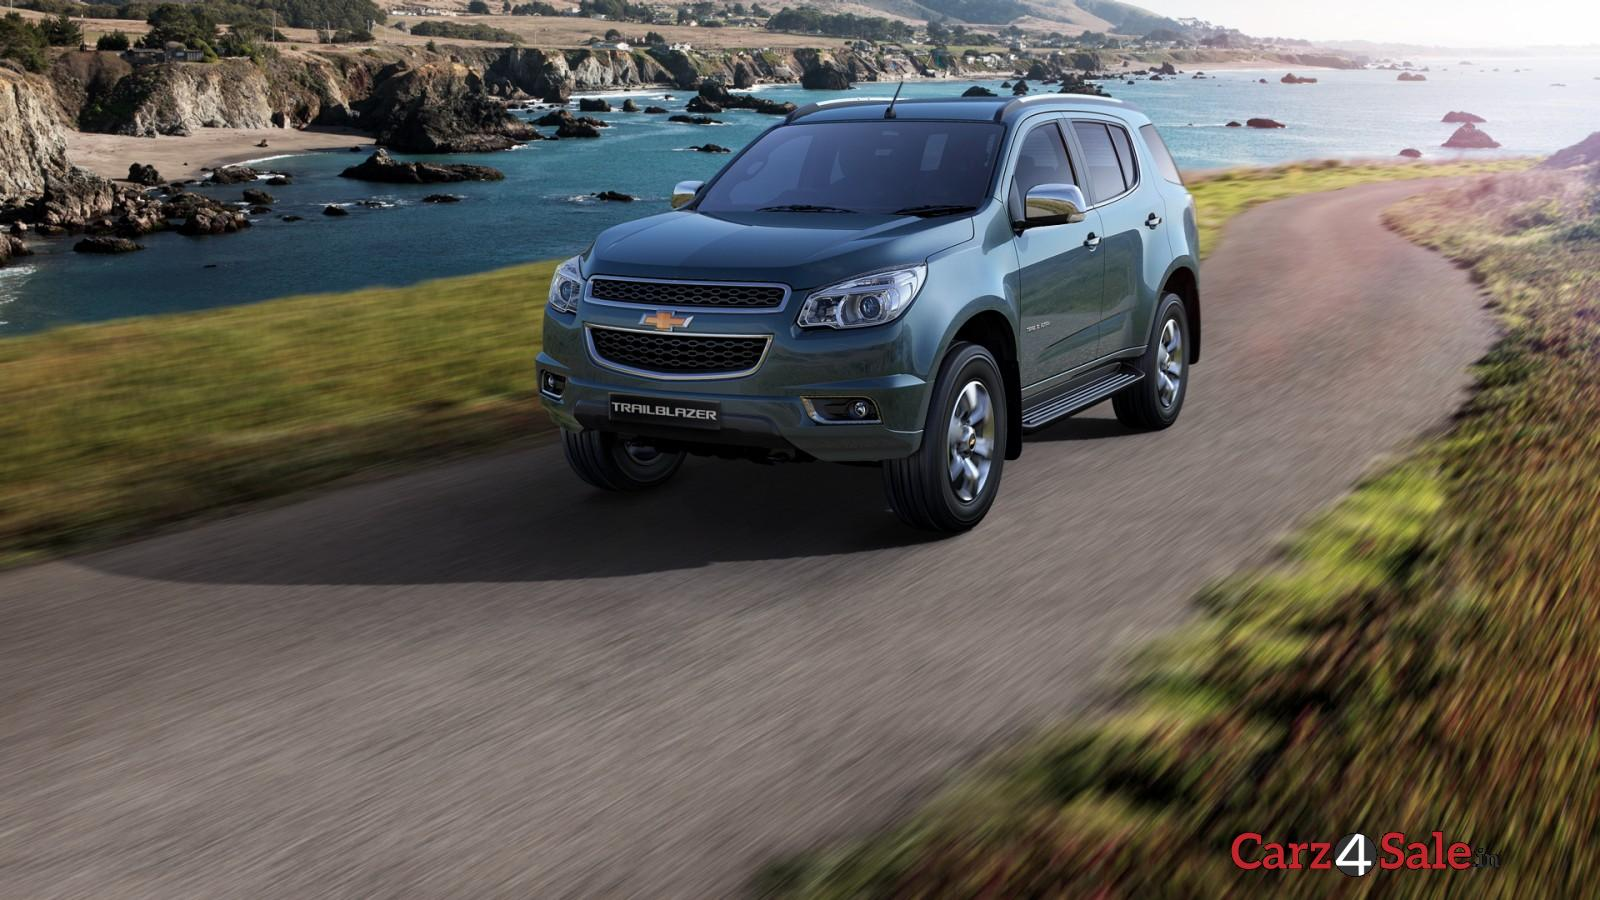 chevrolet-trailblazer-ltz-2-8-4x4-at-pic-4